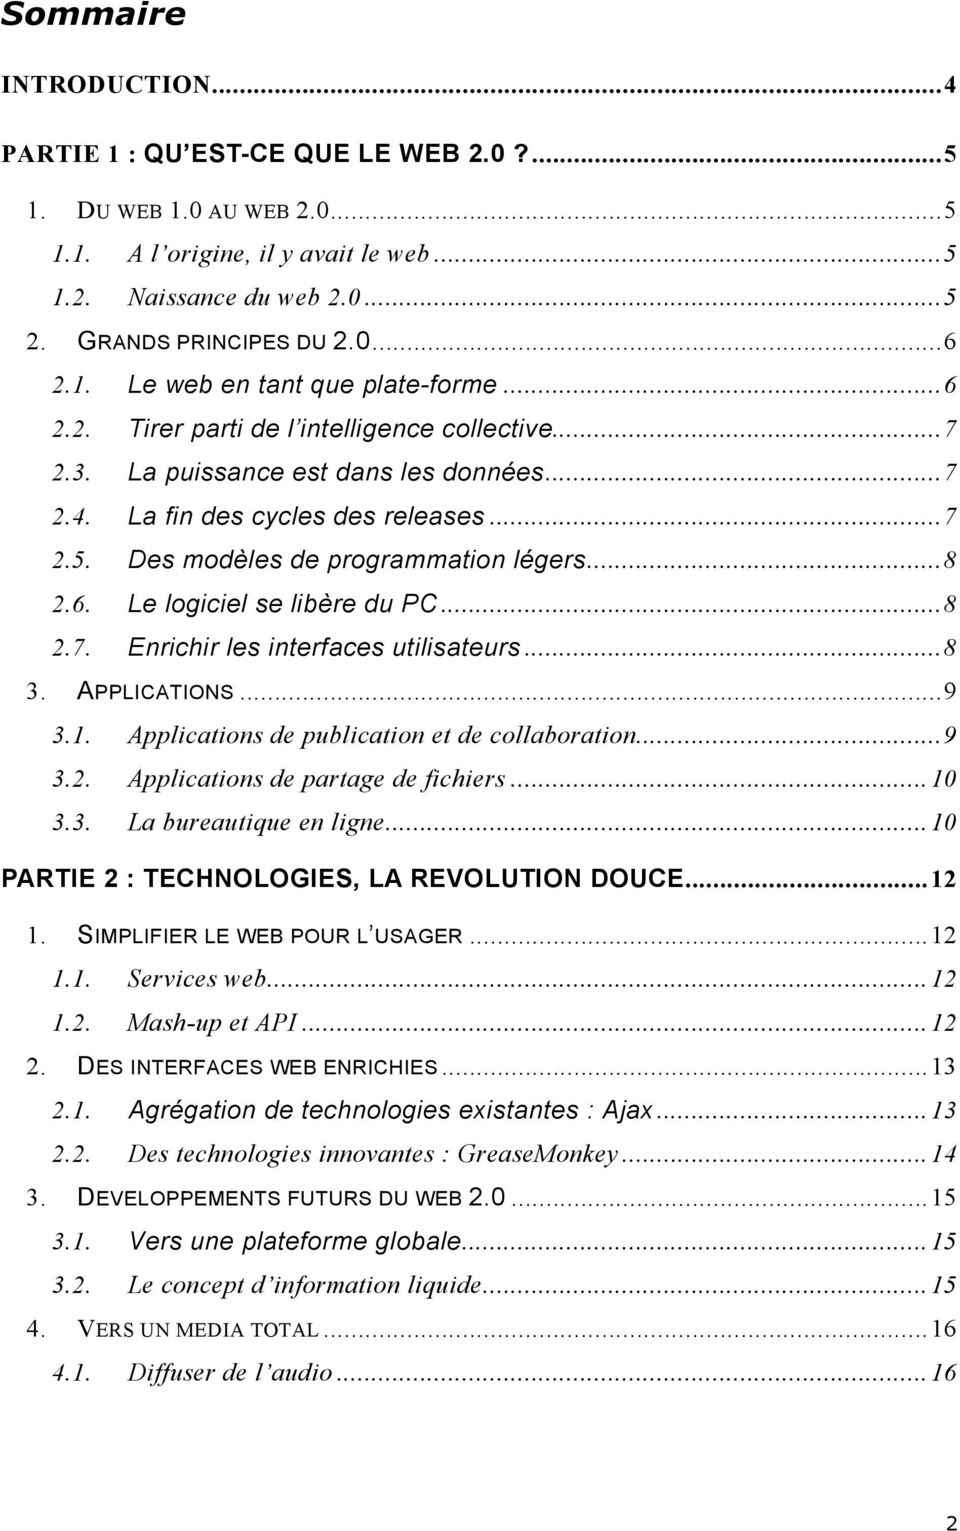 Des modèles de programmation légers...8 2.6. Le logiciel se libère du PC...8 2.7. Enrichir les interfaces utilisateurs...8 3. APPLICATIONS...9 3.1. Applications de publication et de collaboration...9 3.2. Applications de partage de fichiers.